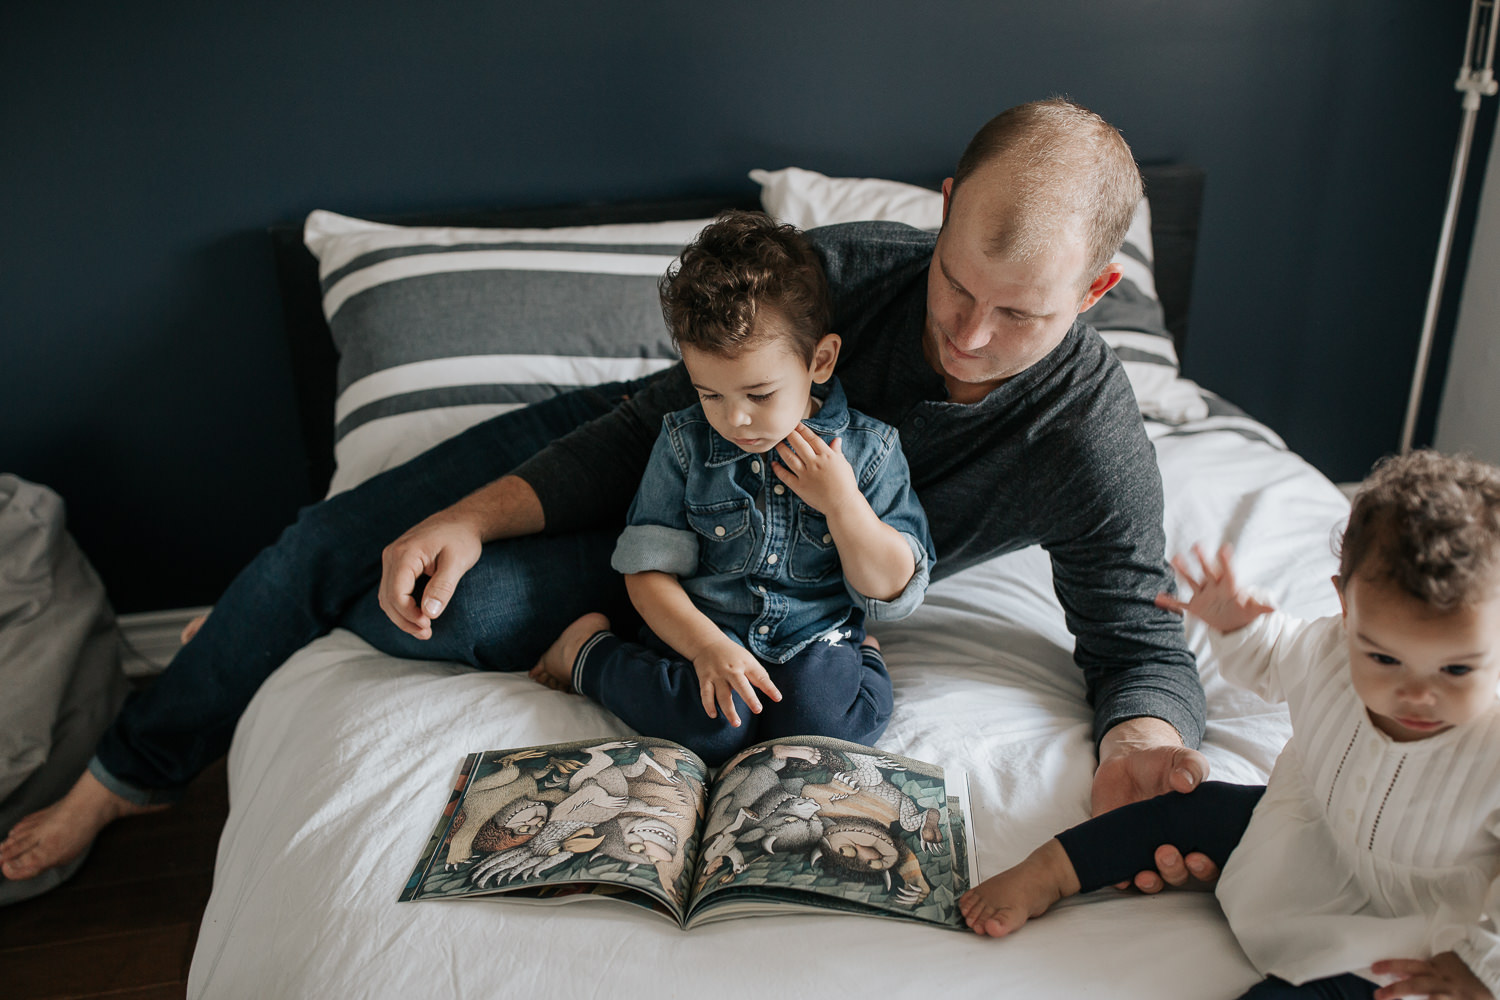 father sitting on bed with 2 year old son reading a story, 1 year old daughter sitting next to them, dad's hand holding her leg - GTA In-Home Photos